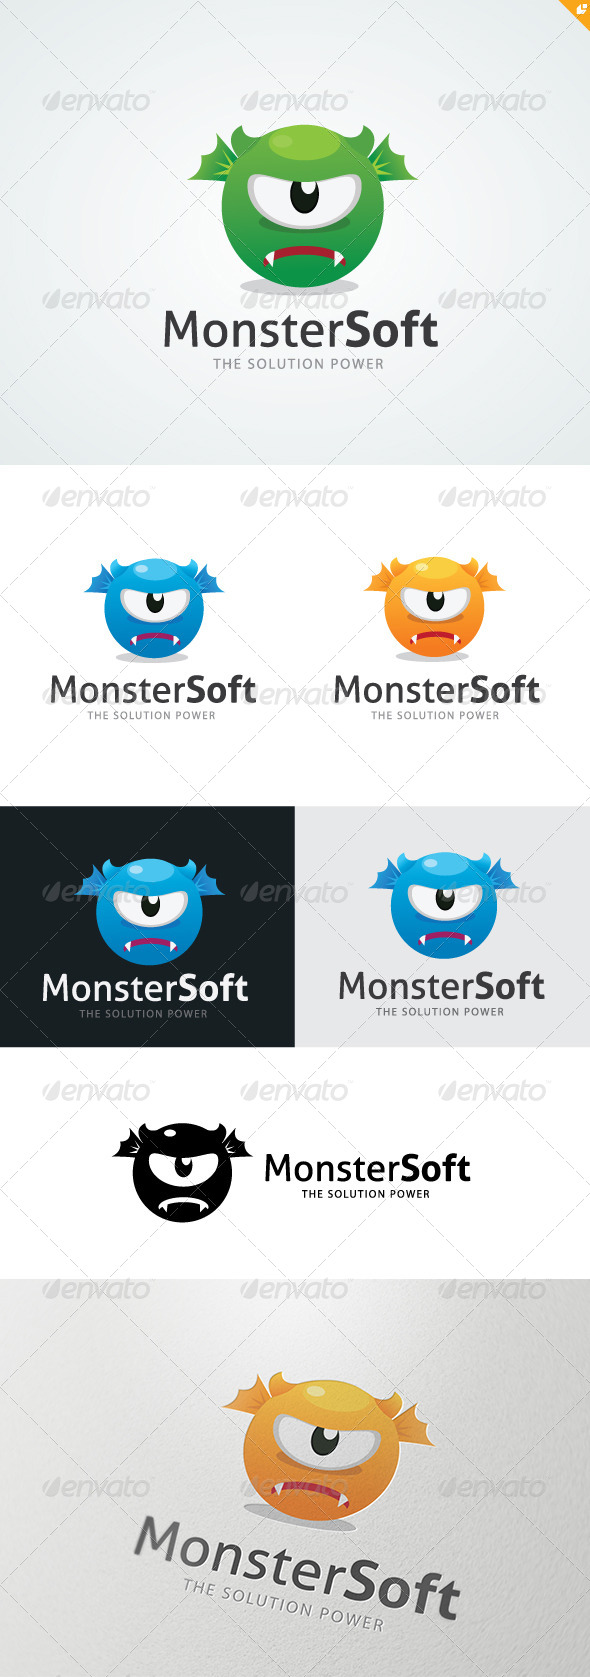 Monster Soft Logo - Vector Abstract